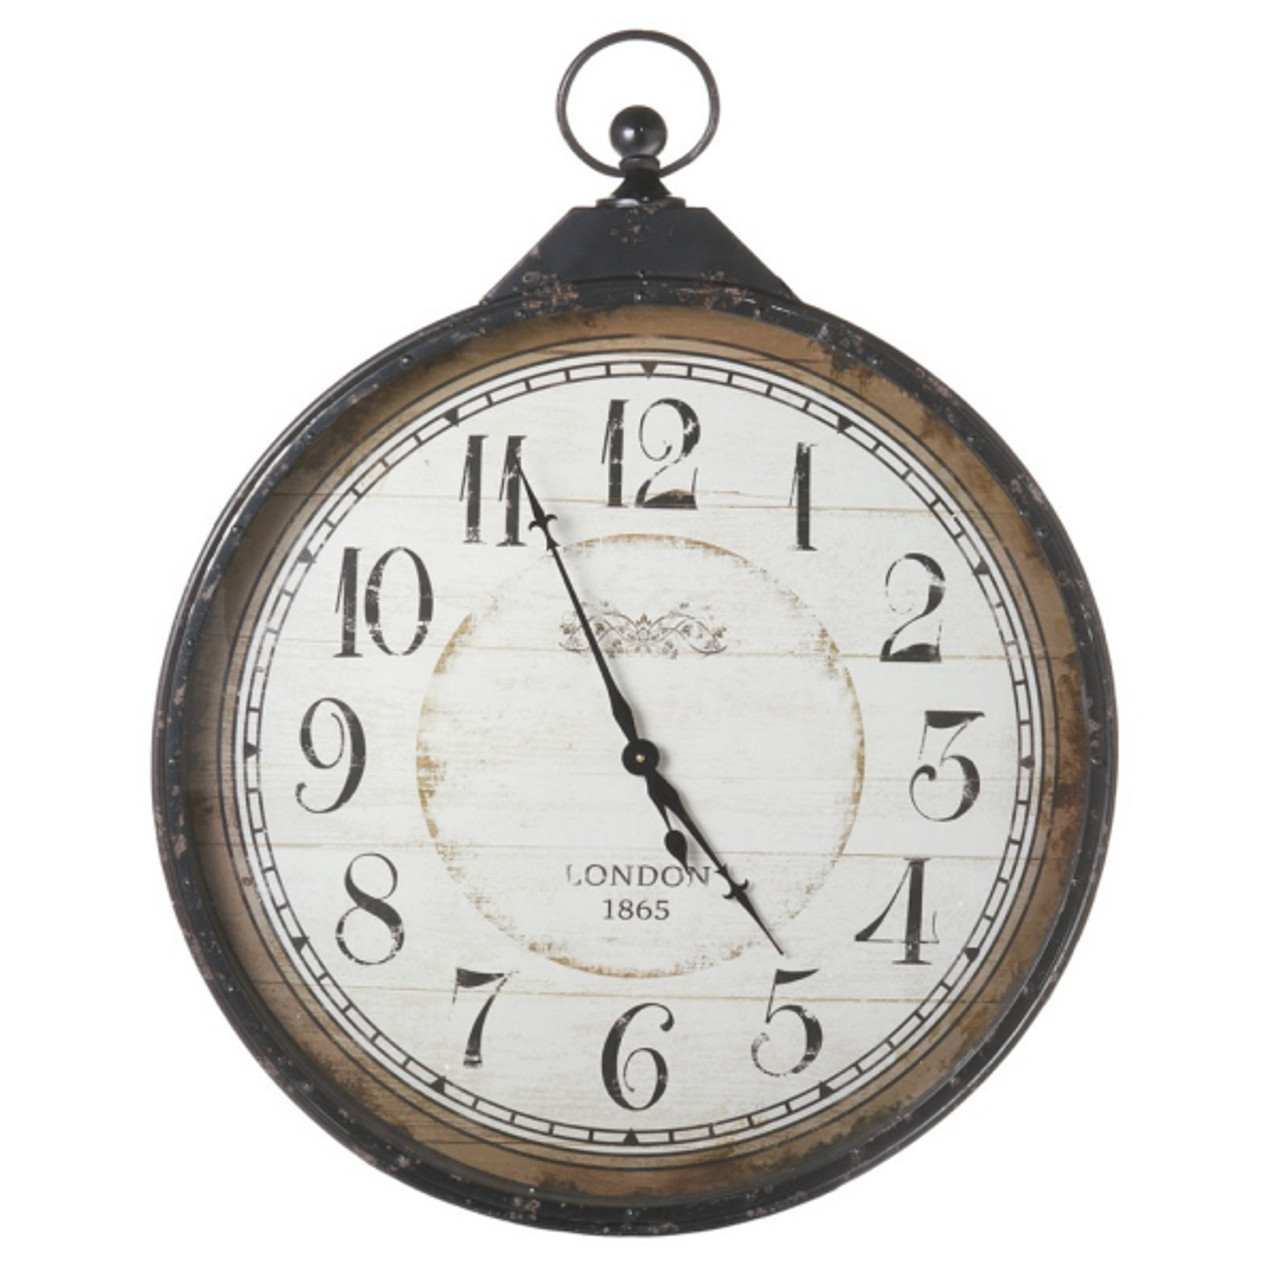 4075 extra large distressed antique style black pocket watch wall 4075 extra large distressed antique style black pocket watch wall clock 30901401 amipublicfo Images